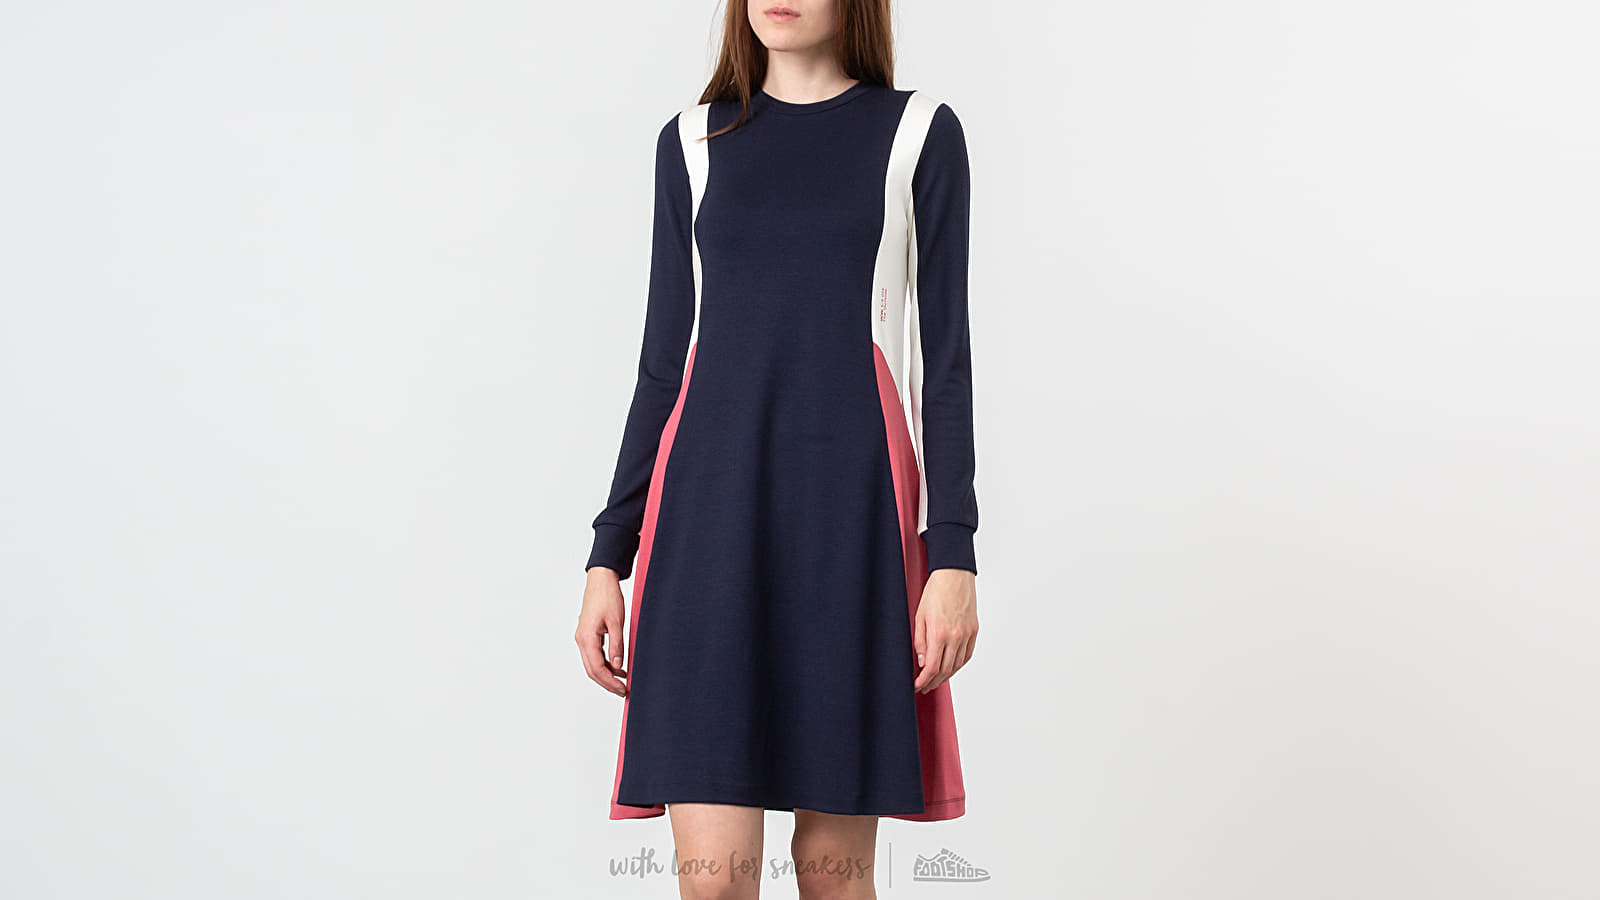 WOOD WOOD Mandy Dress Navy Colorblock za skvelú cenu 104 € kúpite na Footshop.sk